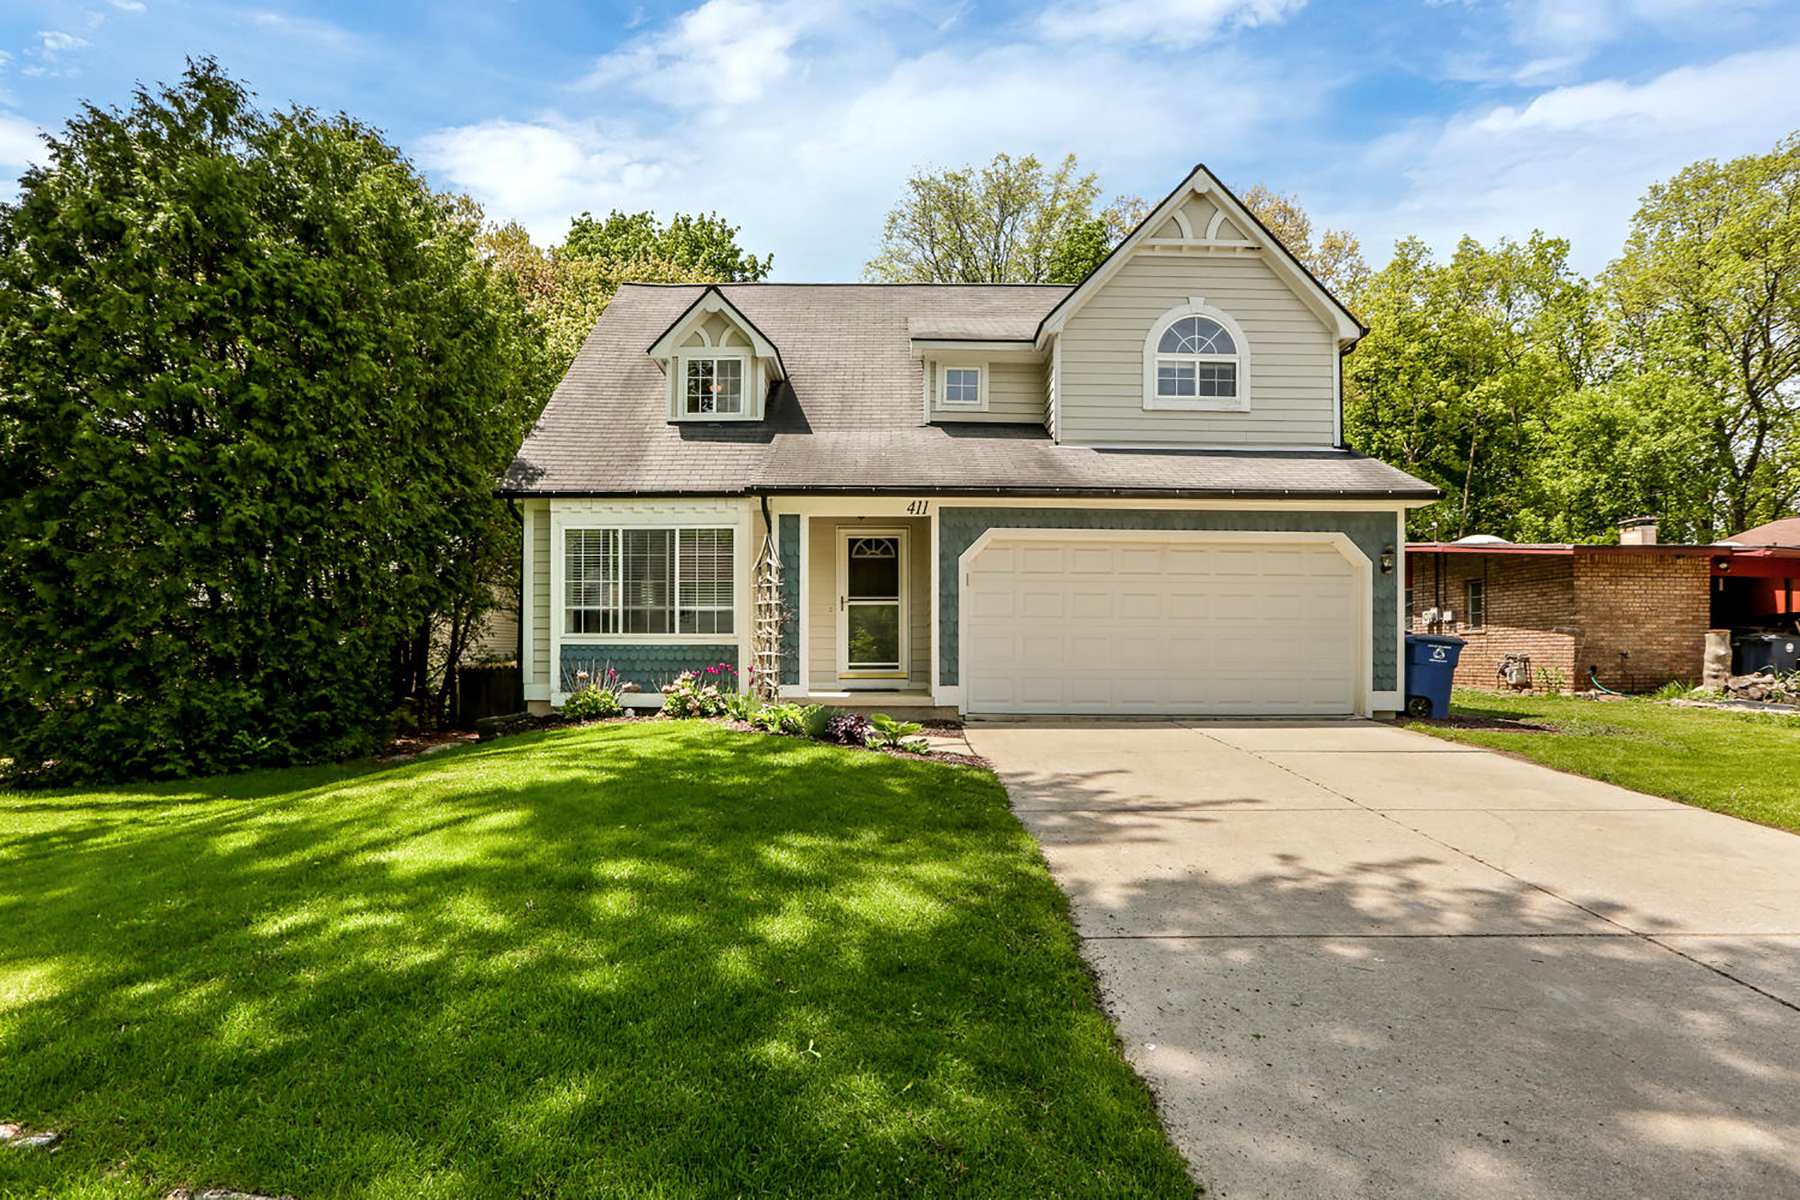 Single Family Homes for Sale at Ann Arbor 411 Evergreen Drive Ann Arbor, Michigan 48103 United States